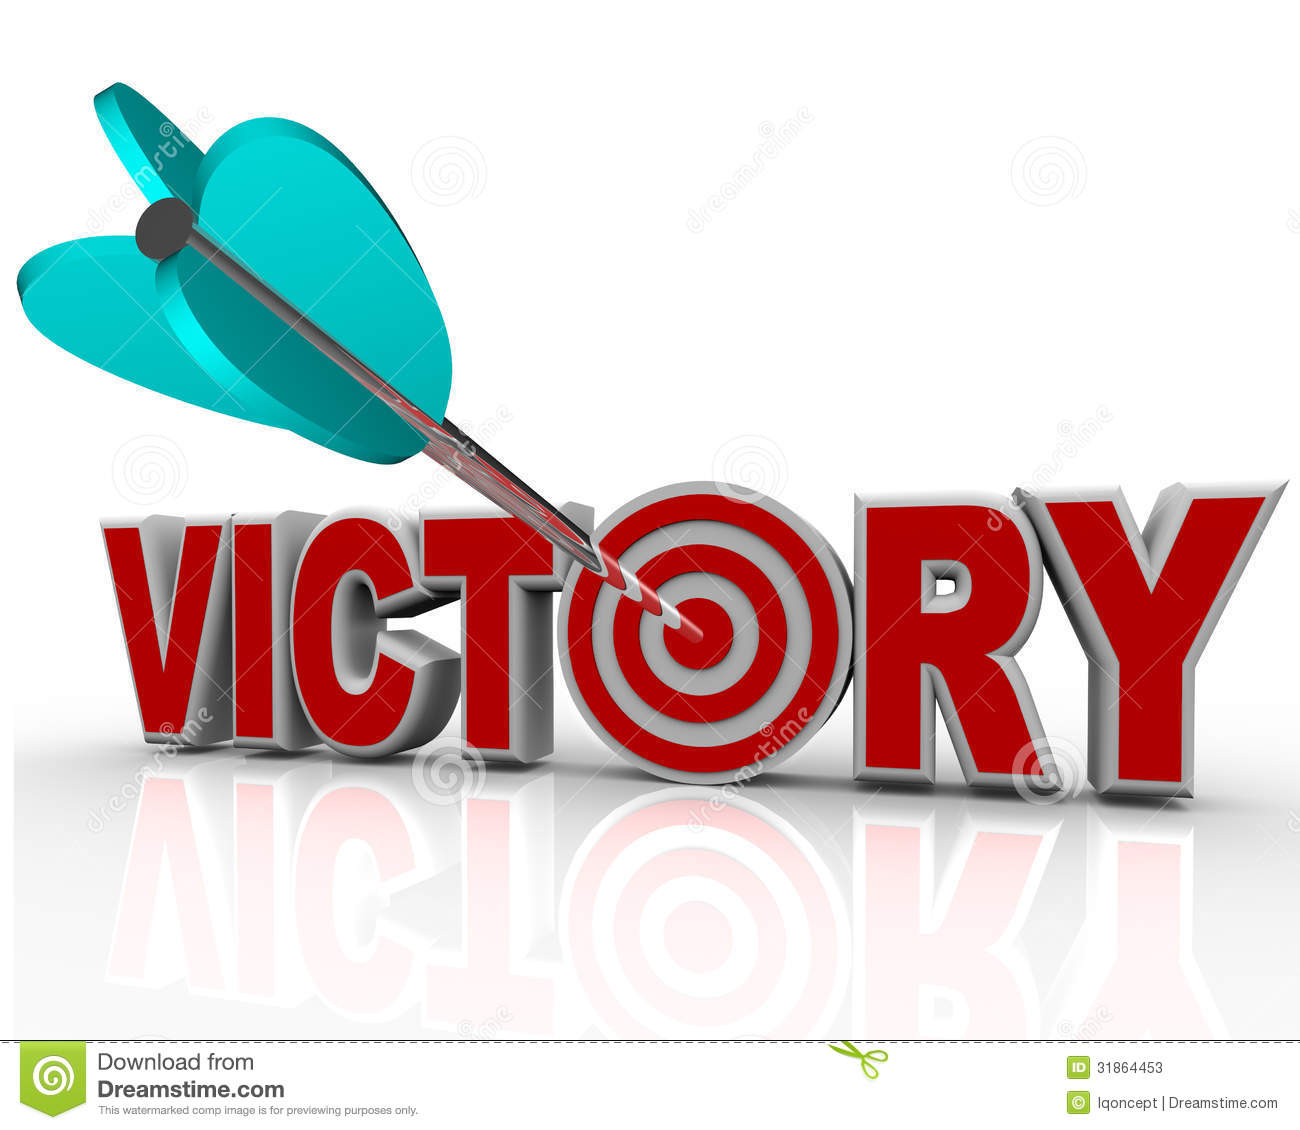 Victory in jesus clipart.